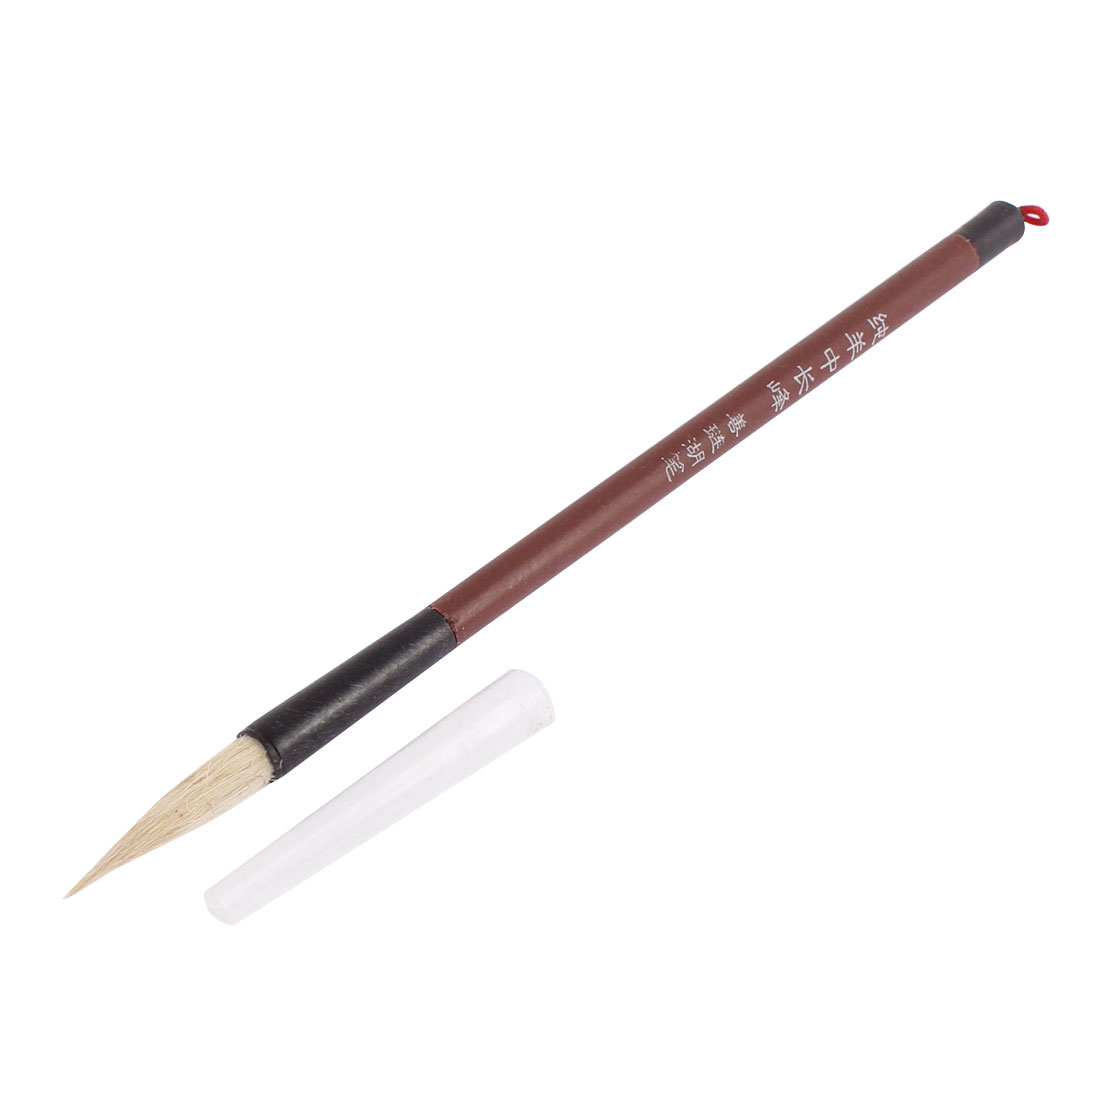 "Chinese Calligraphy Writing Drawing Brush Pen 9"" Length"